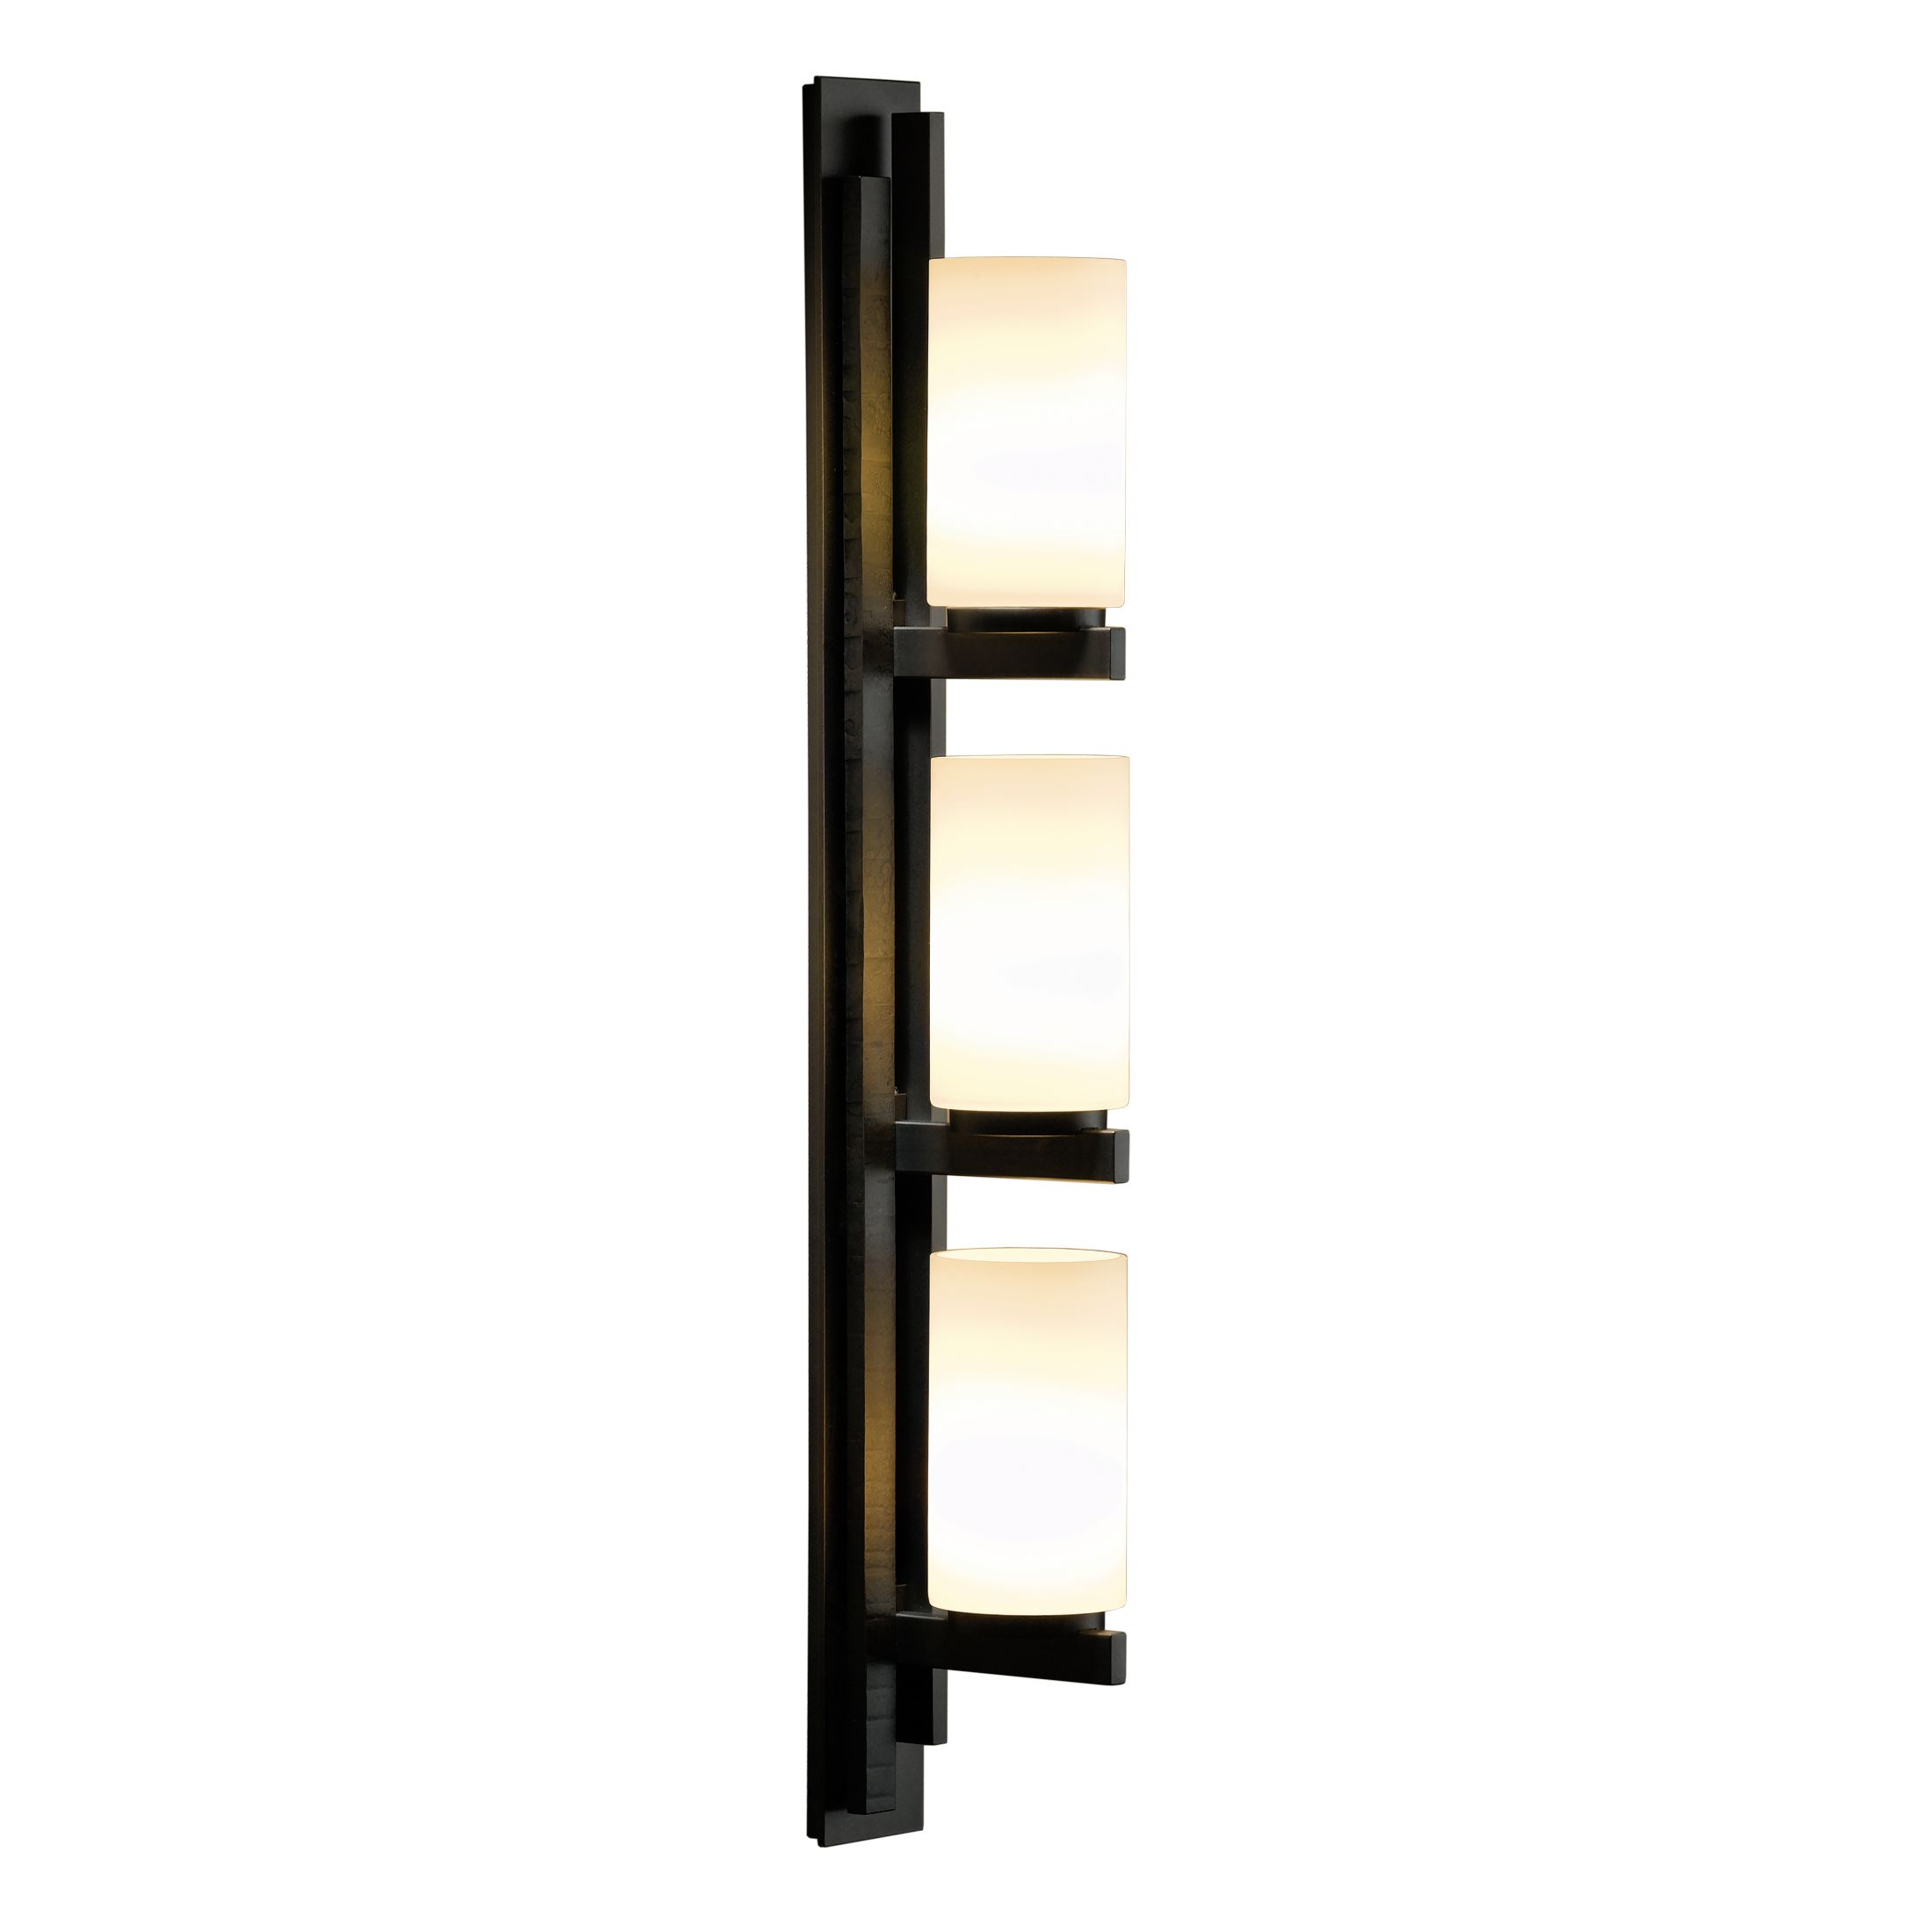 Thumbnail for Ondrian 3 Light Vertical Sconce